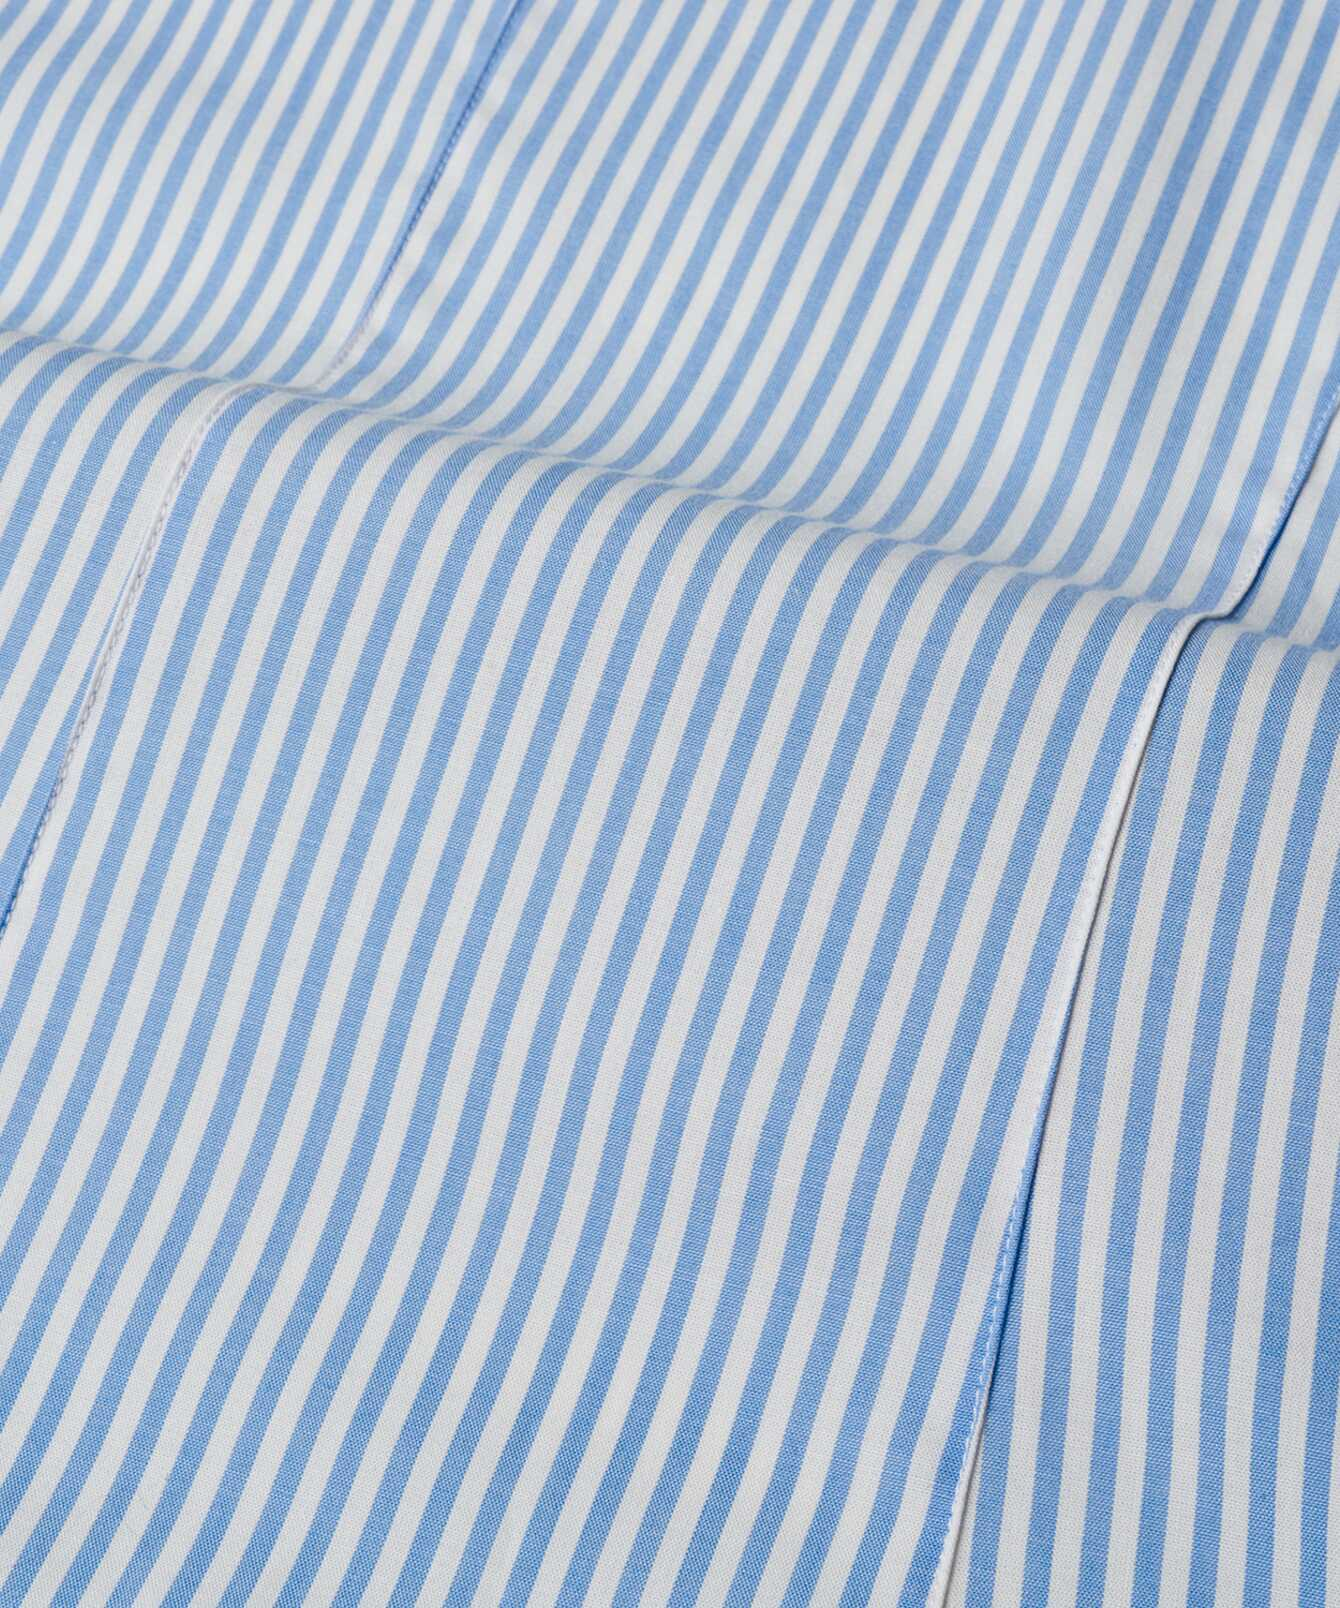 Shirt Emma Stripe Blå  The Shirt Factory